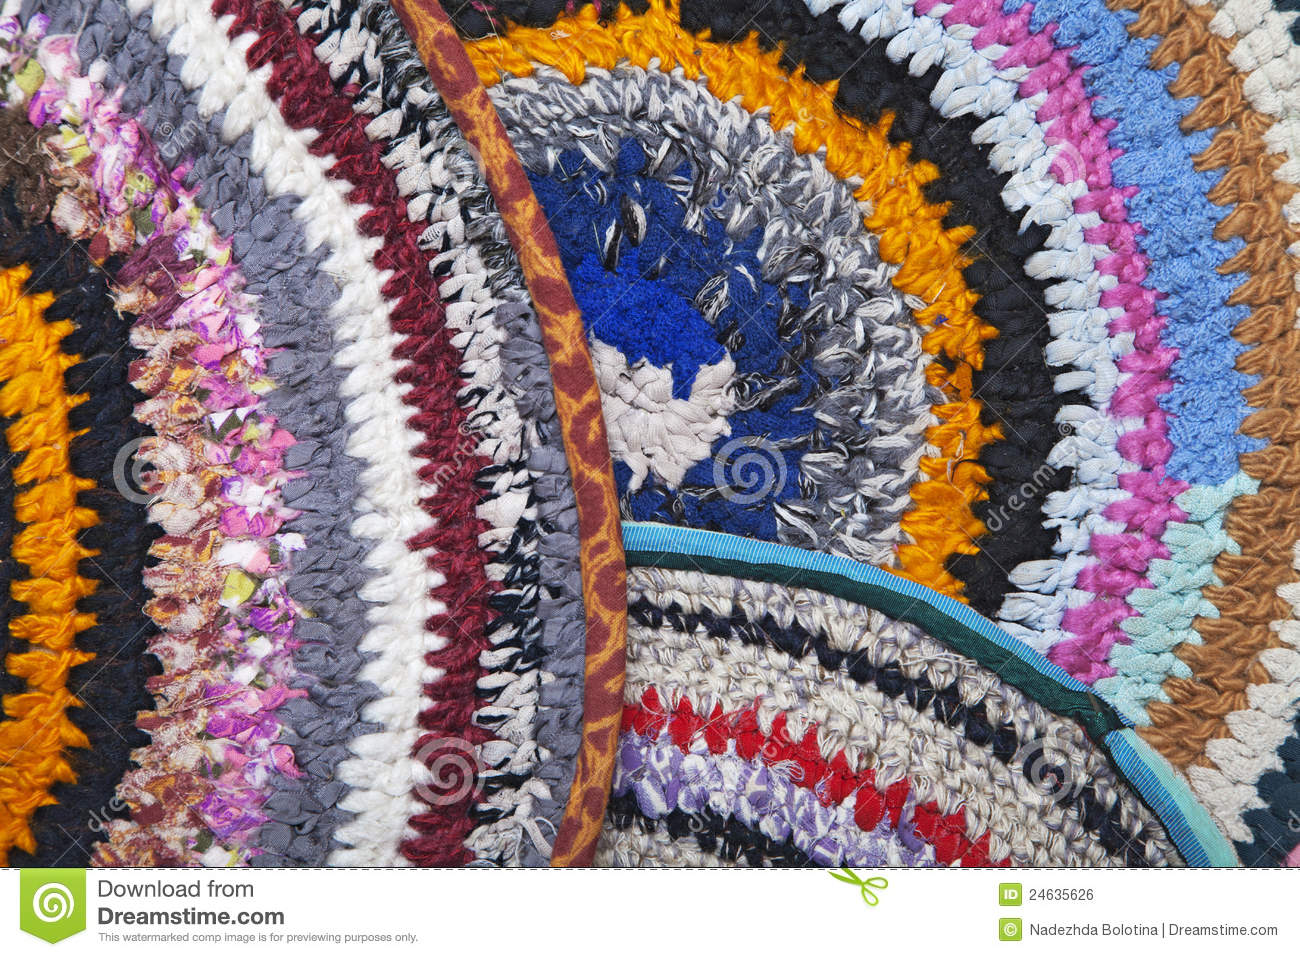 Marvelous Colorful Crocheted Handmade ...